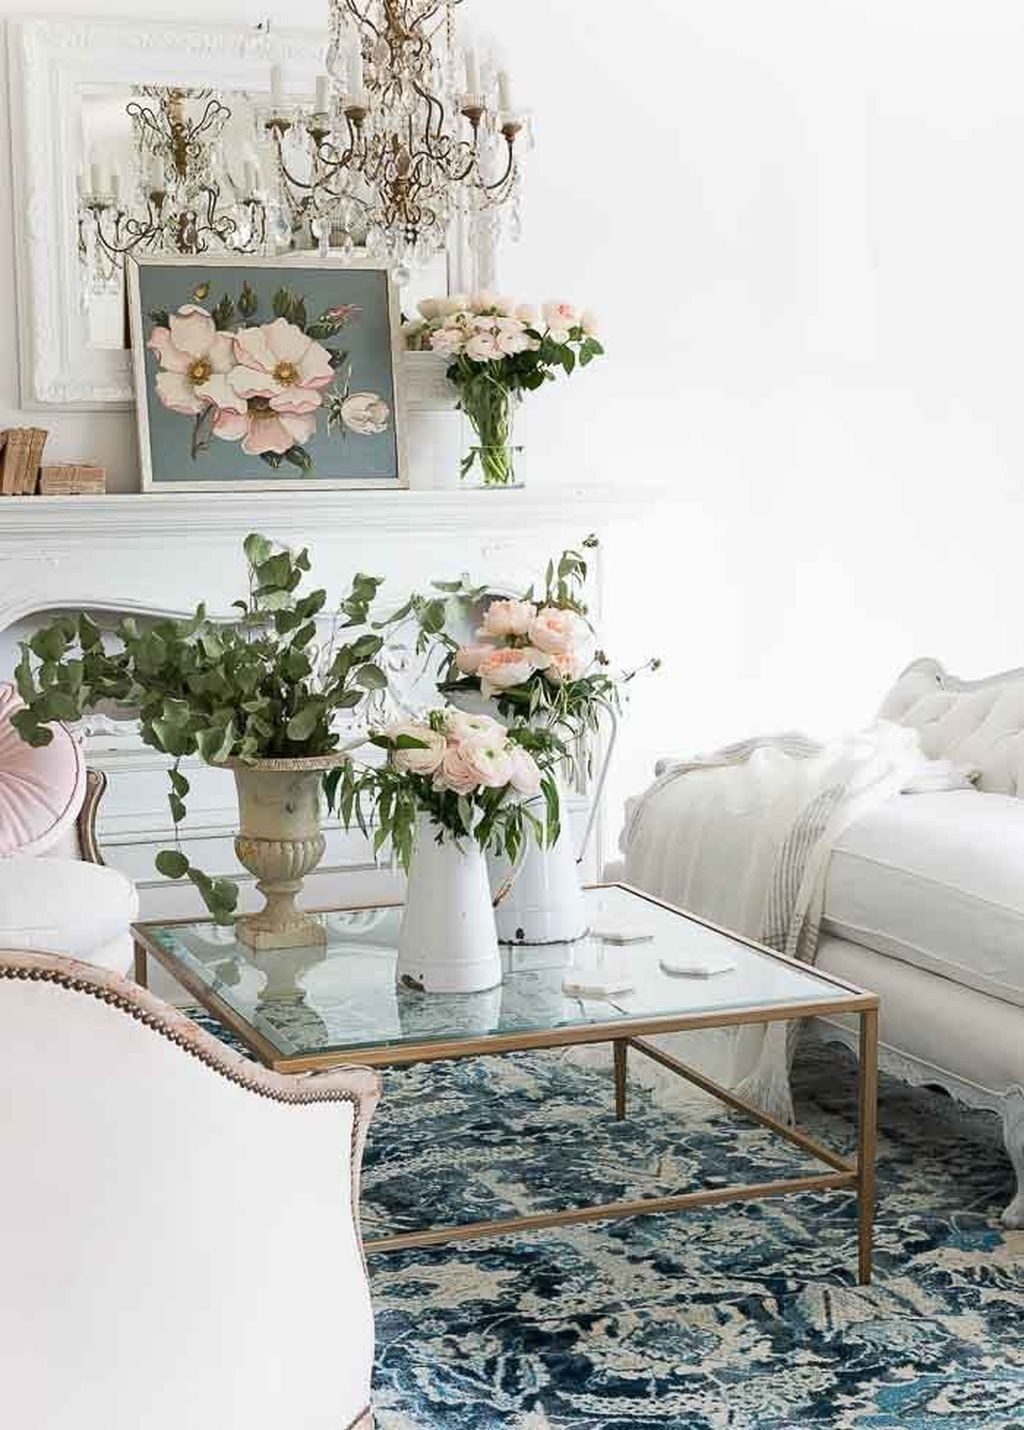 49 Cozy French Country Living Room Decor Ideas | Fashion for ...